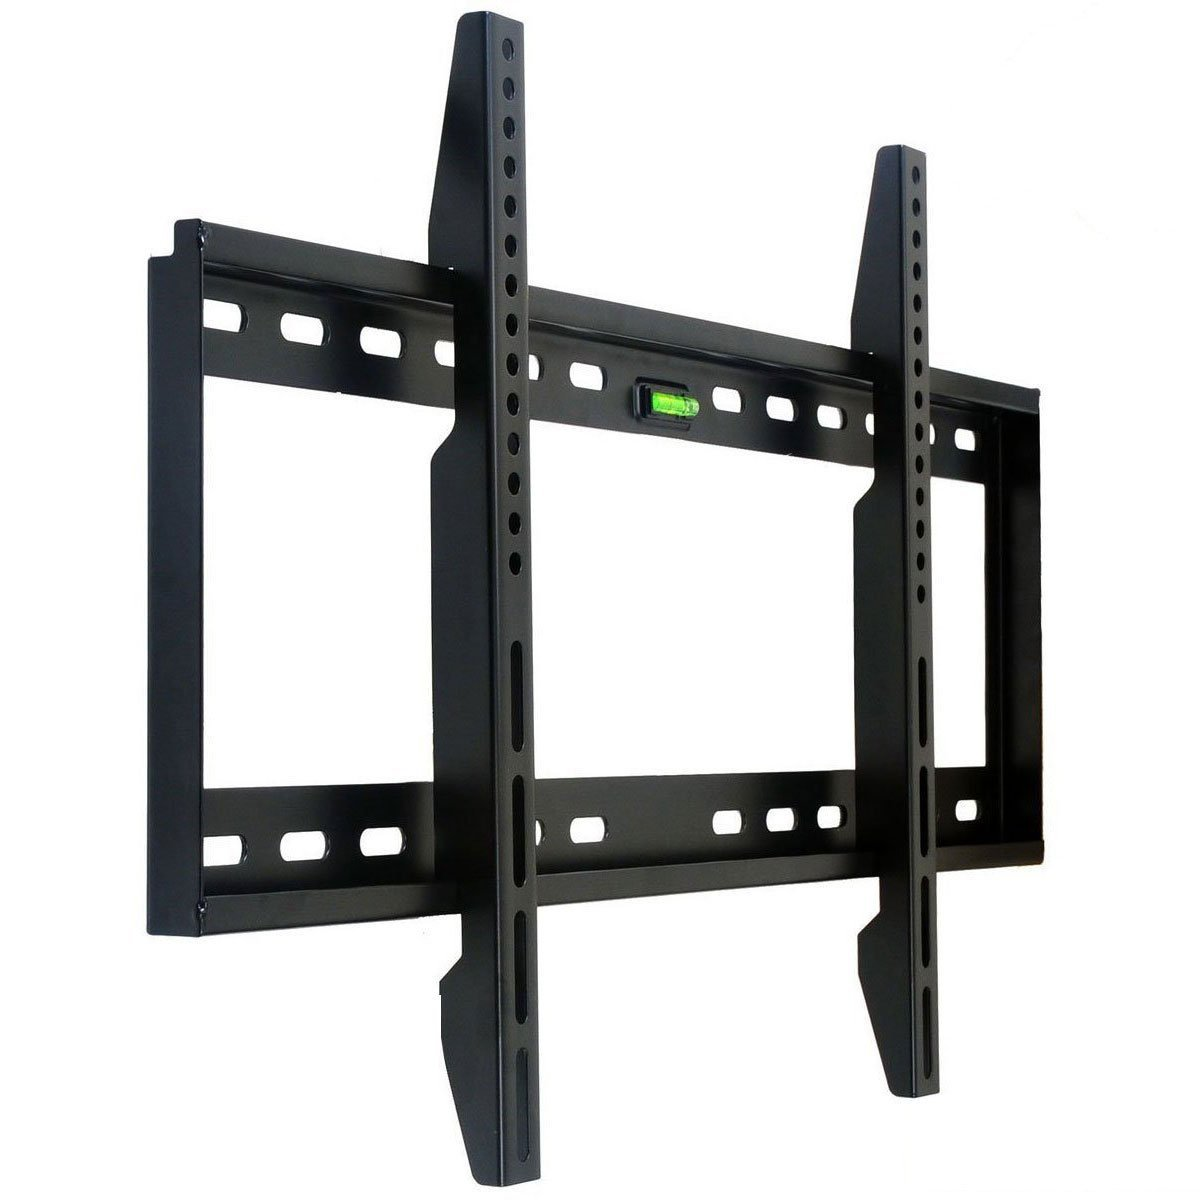 Ultra Slim TV Wall Mount for Westinghouse LD-325 Series LD-3260 LD-3265 SK-32H640G VR-3215 VR-3235 VR-3236 EW37S5KW... by